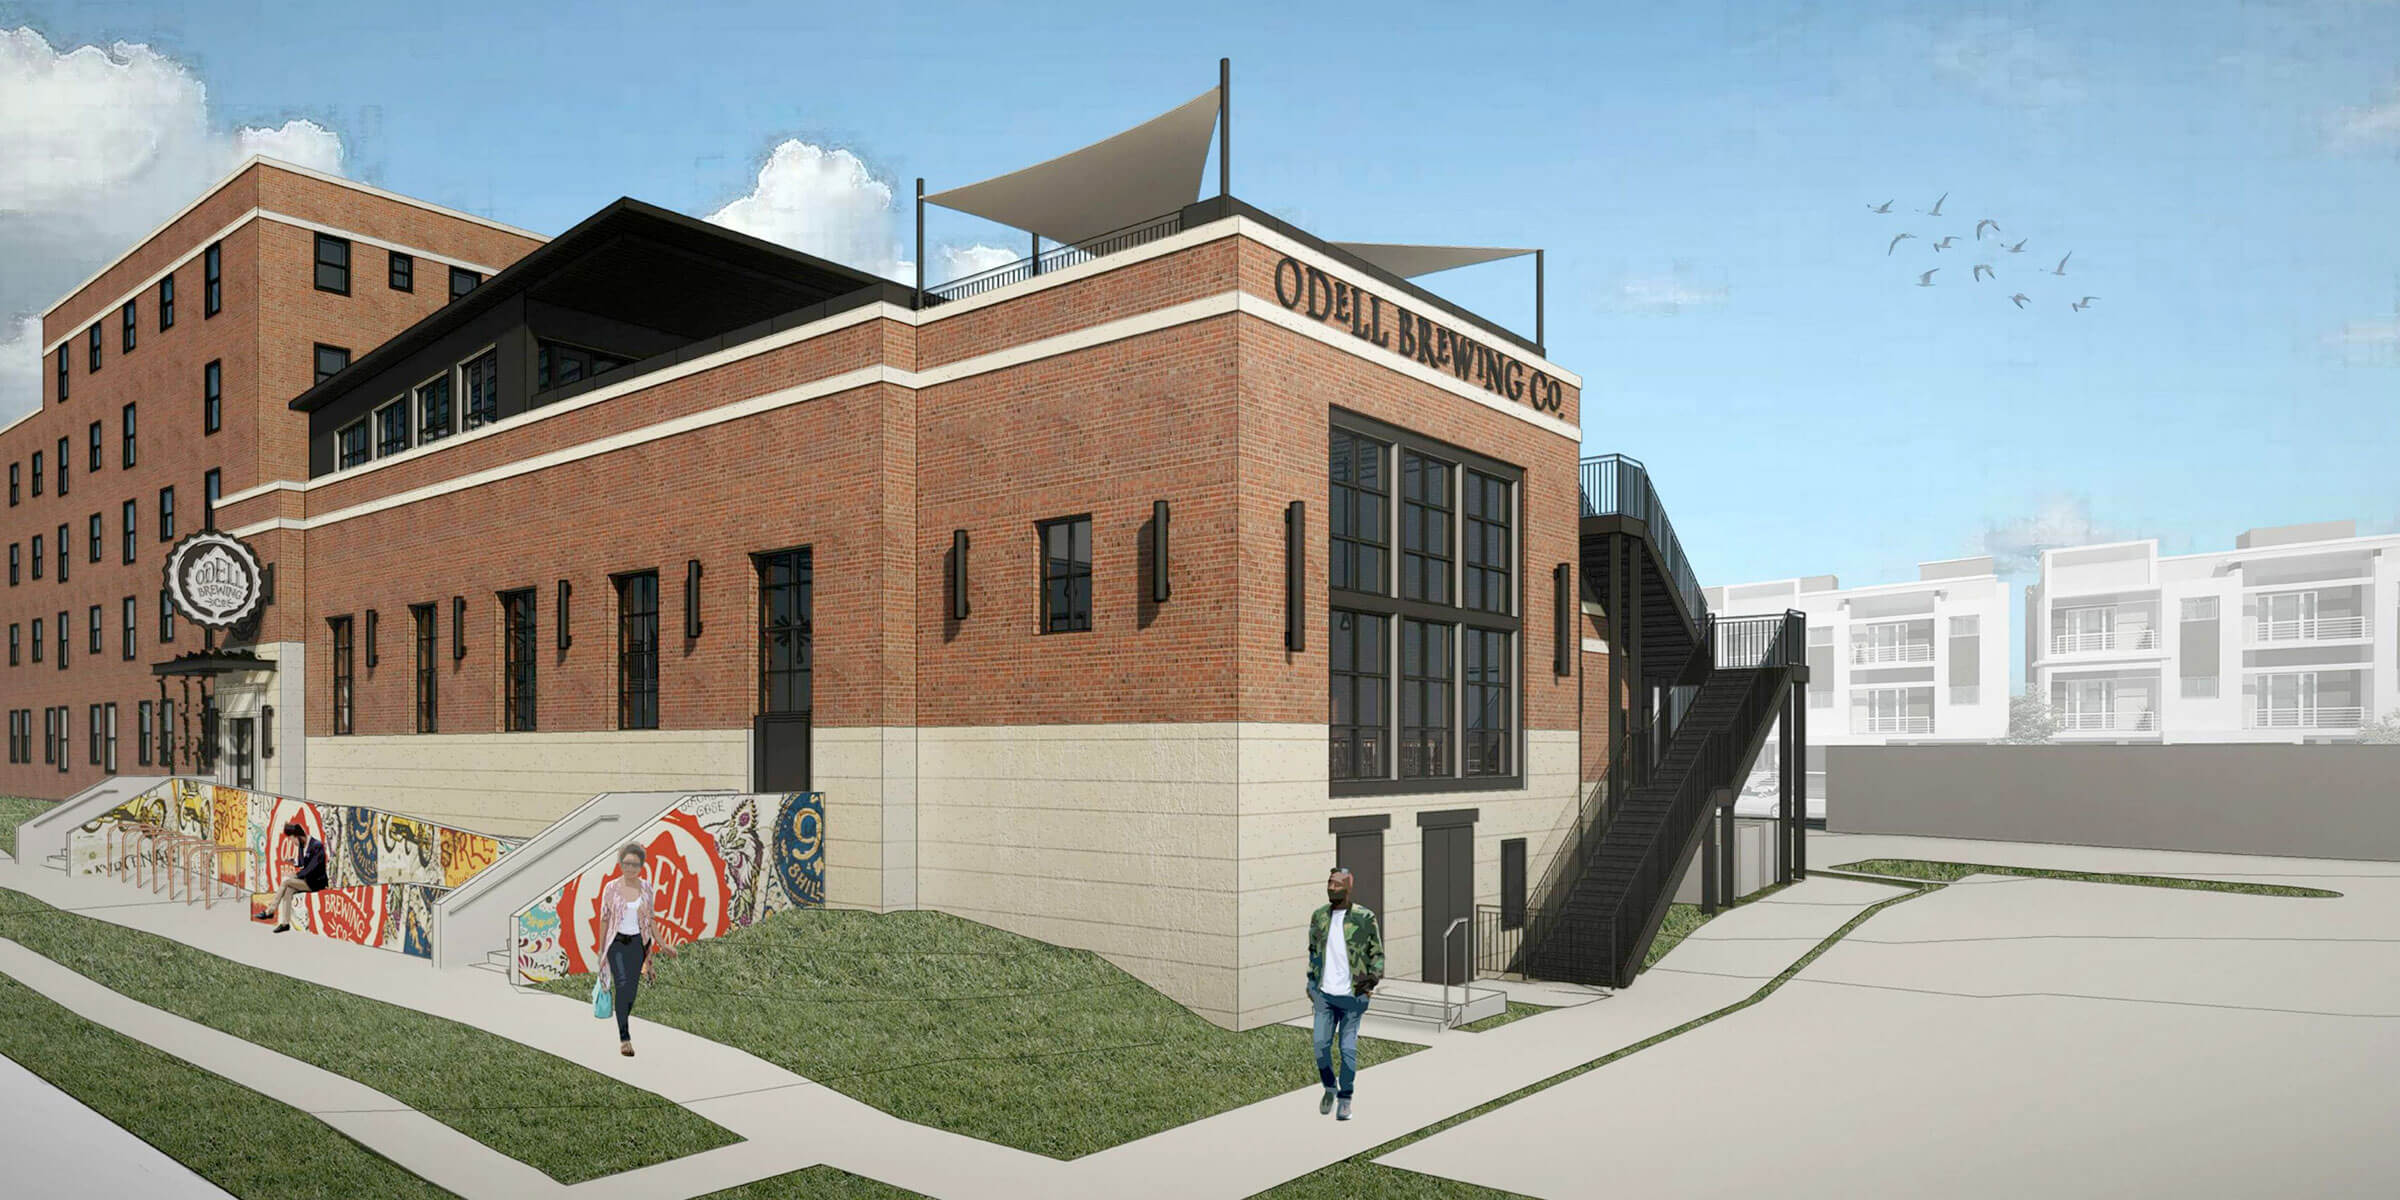 Architectural rendering of the Sloan's Lake Brewhouse and Pizzeria, the newest location of Odell Brewing Co.